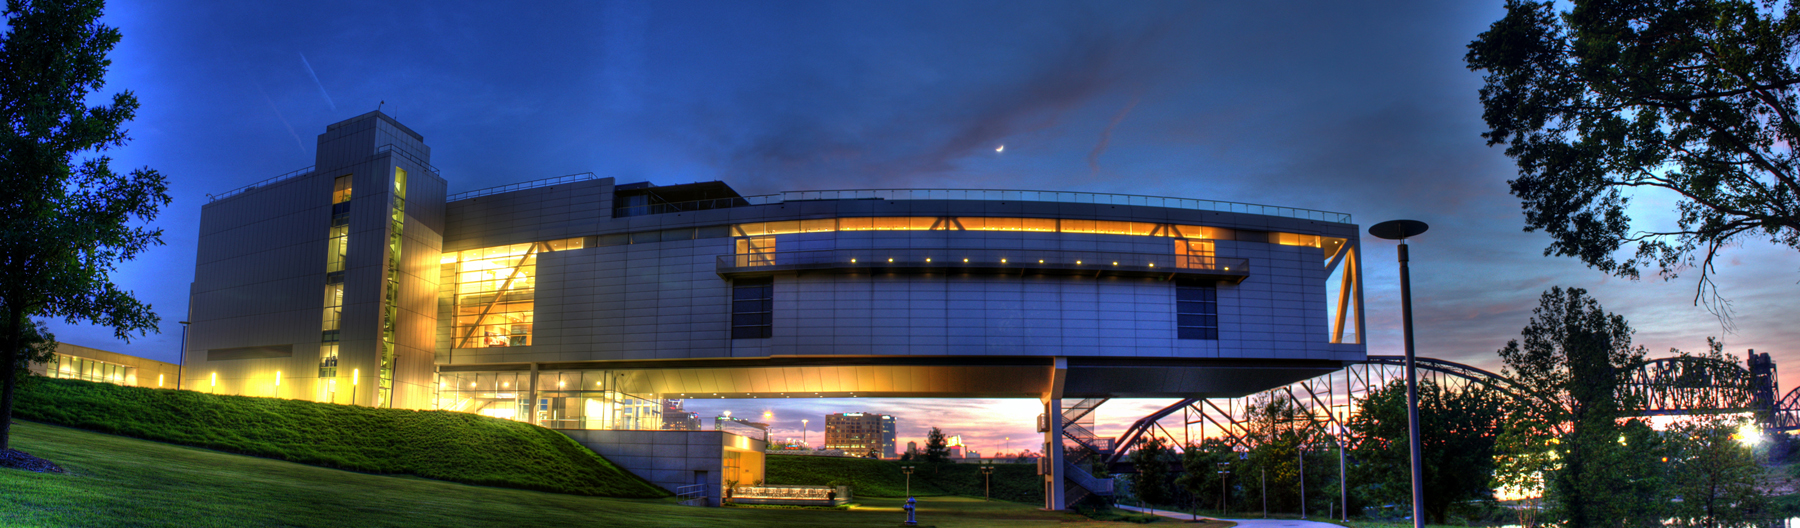 Clinton Library - Little Rock, Arkansas (source)